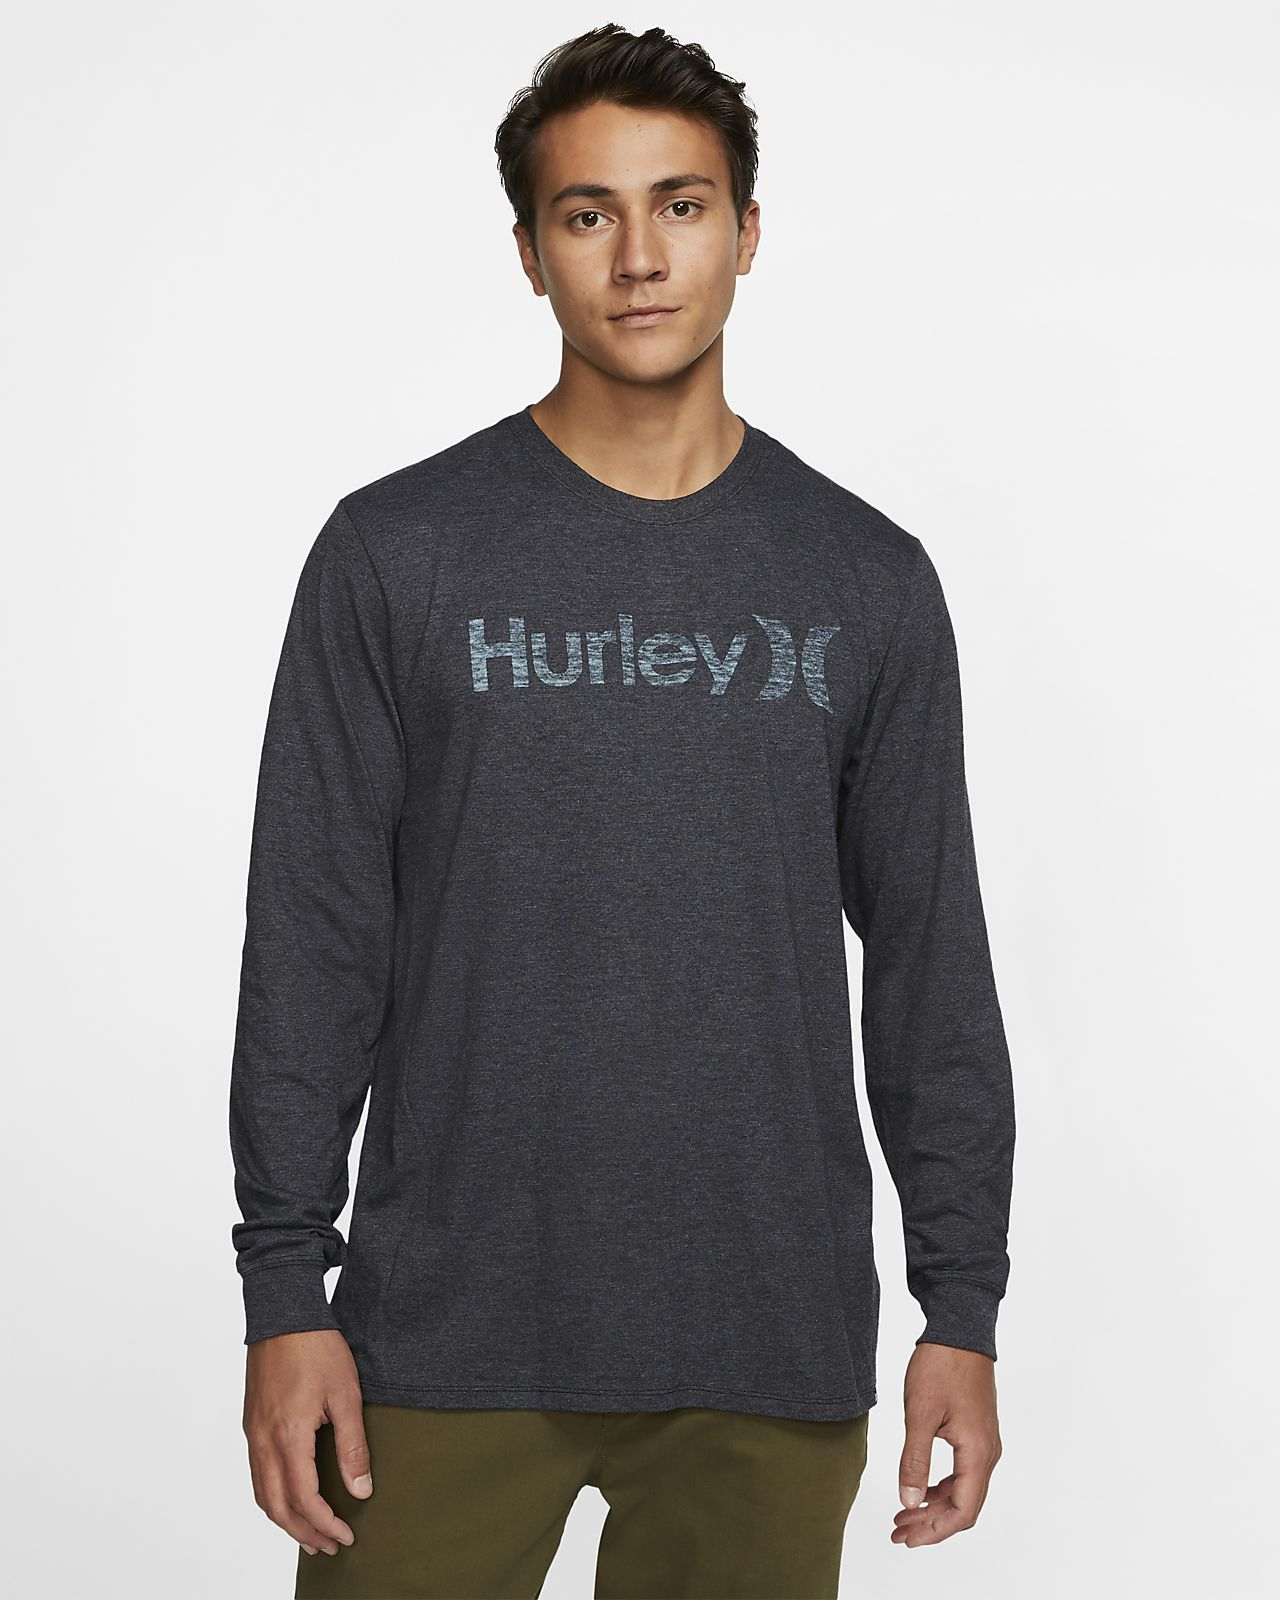 Hurley Premium One And Only Push Through Men's Long-Sleeve T-Shirt